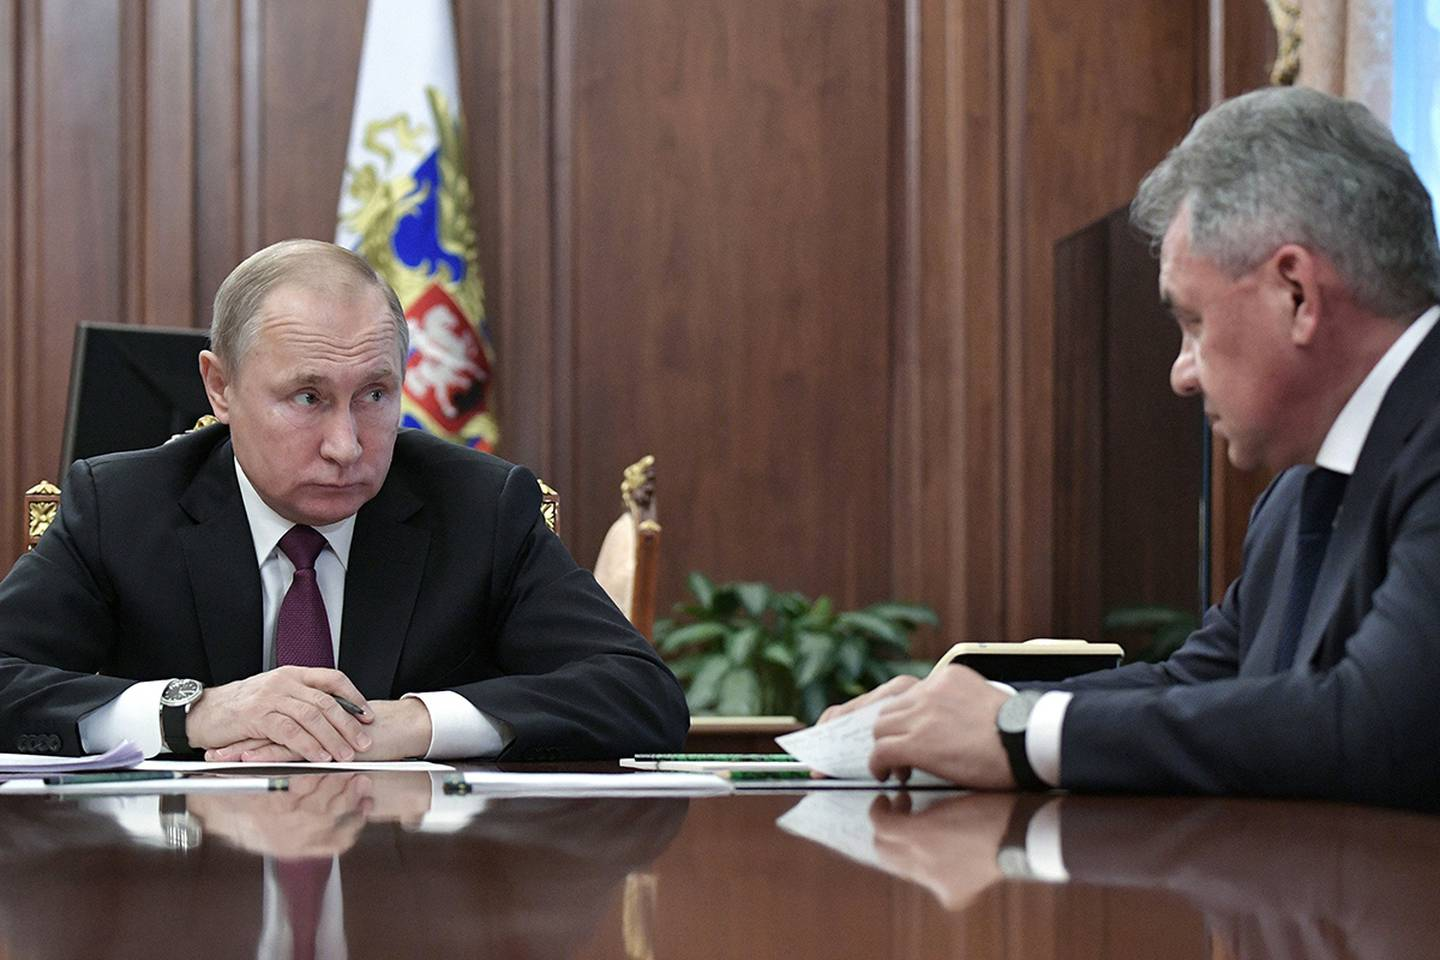 In this Feb. 2, 2019, file photo, Russian President Vladimir Putin, left, speaks to Defense Minister Sergei Shoigu during a meeting in the Kremlin in Moscow.